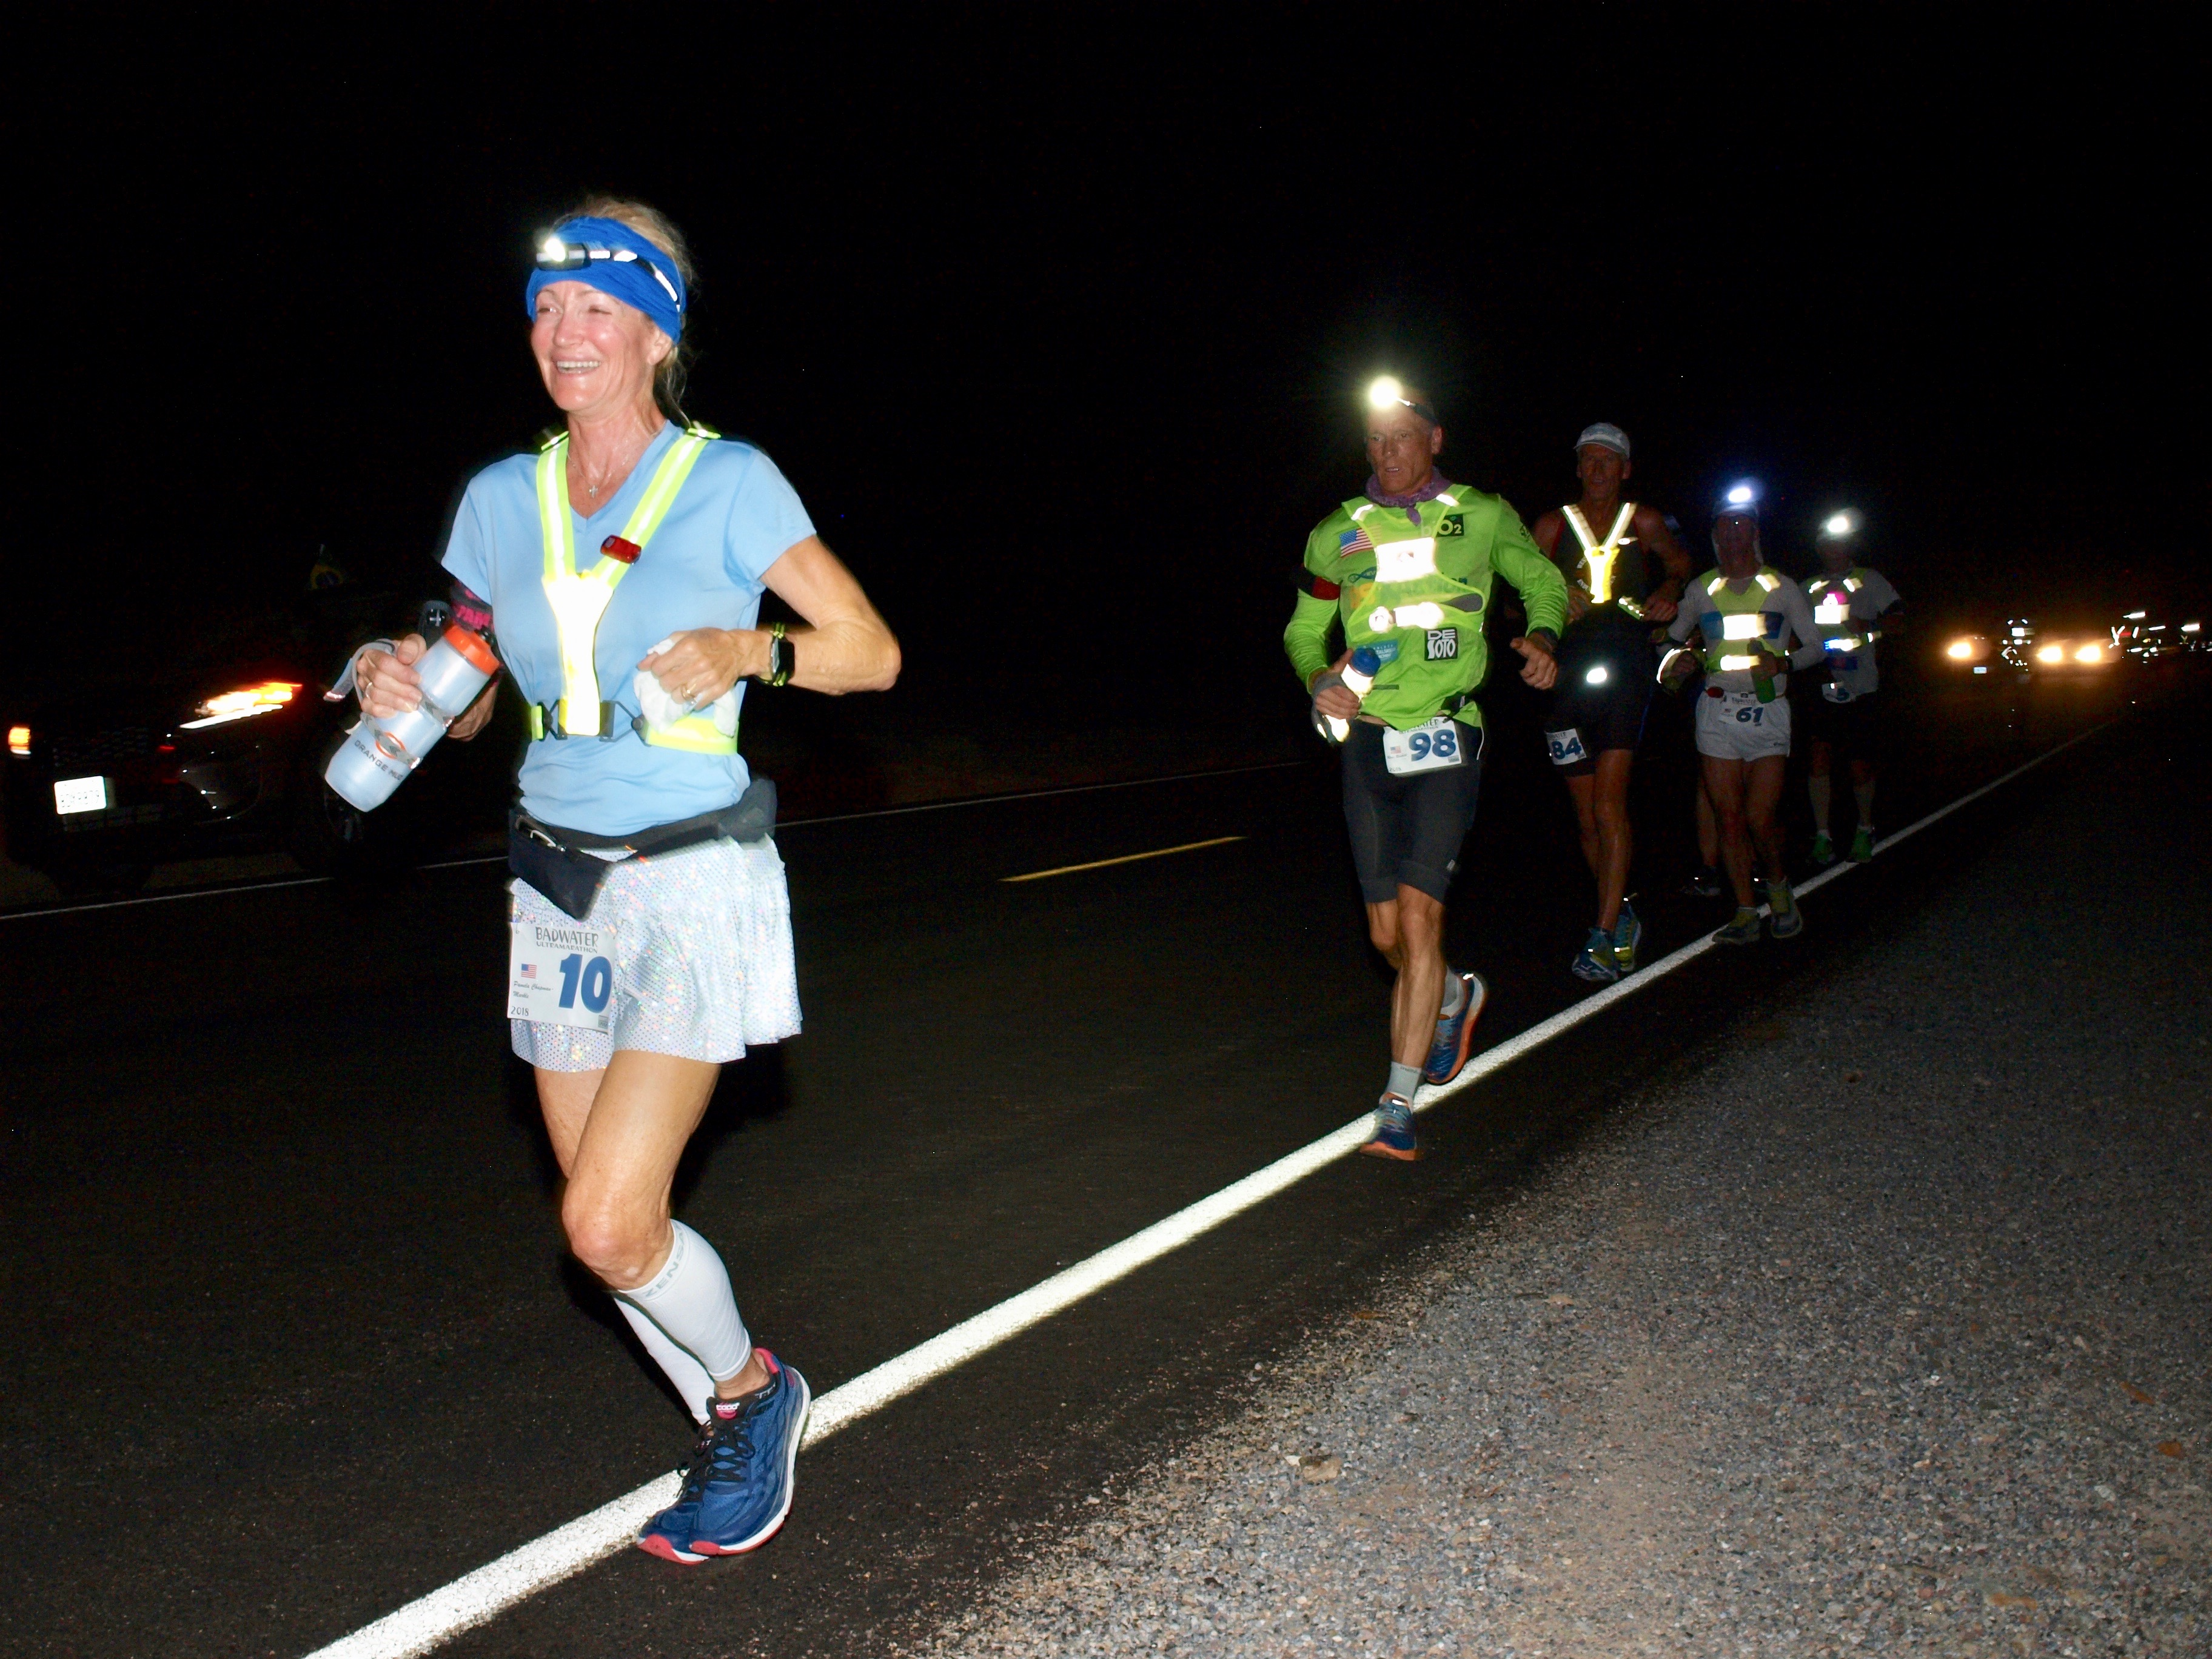 Runners, at night, in a string, run along a paved road.